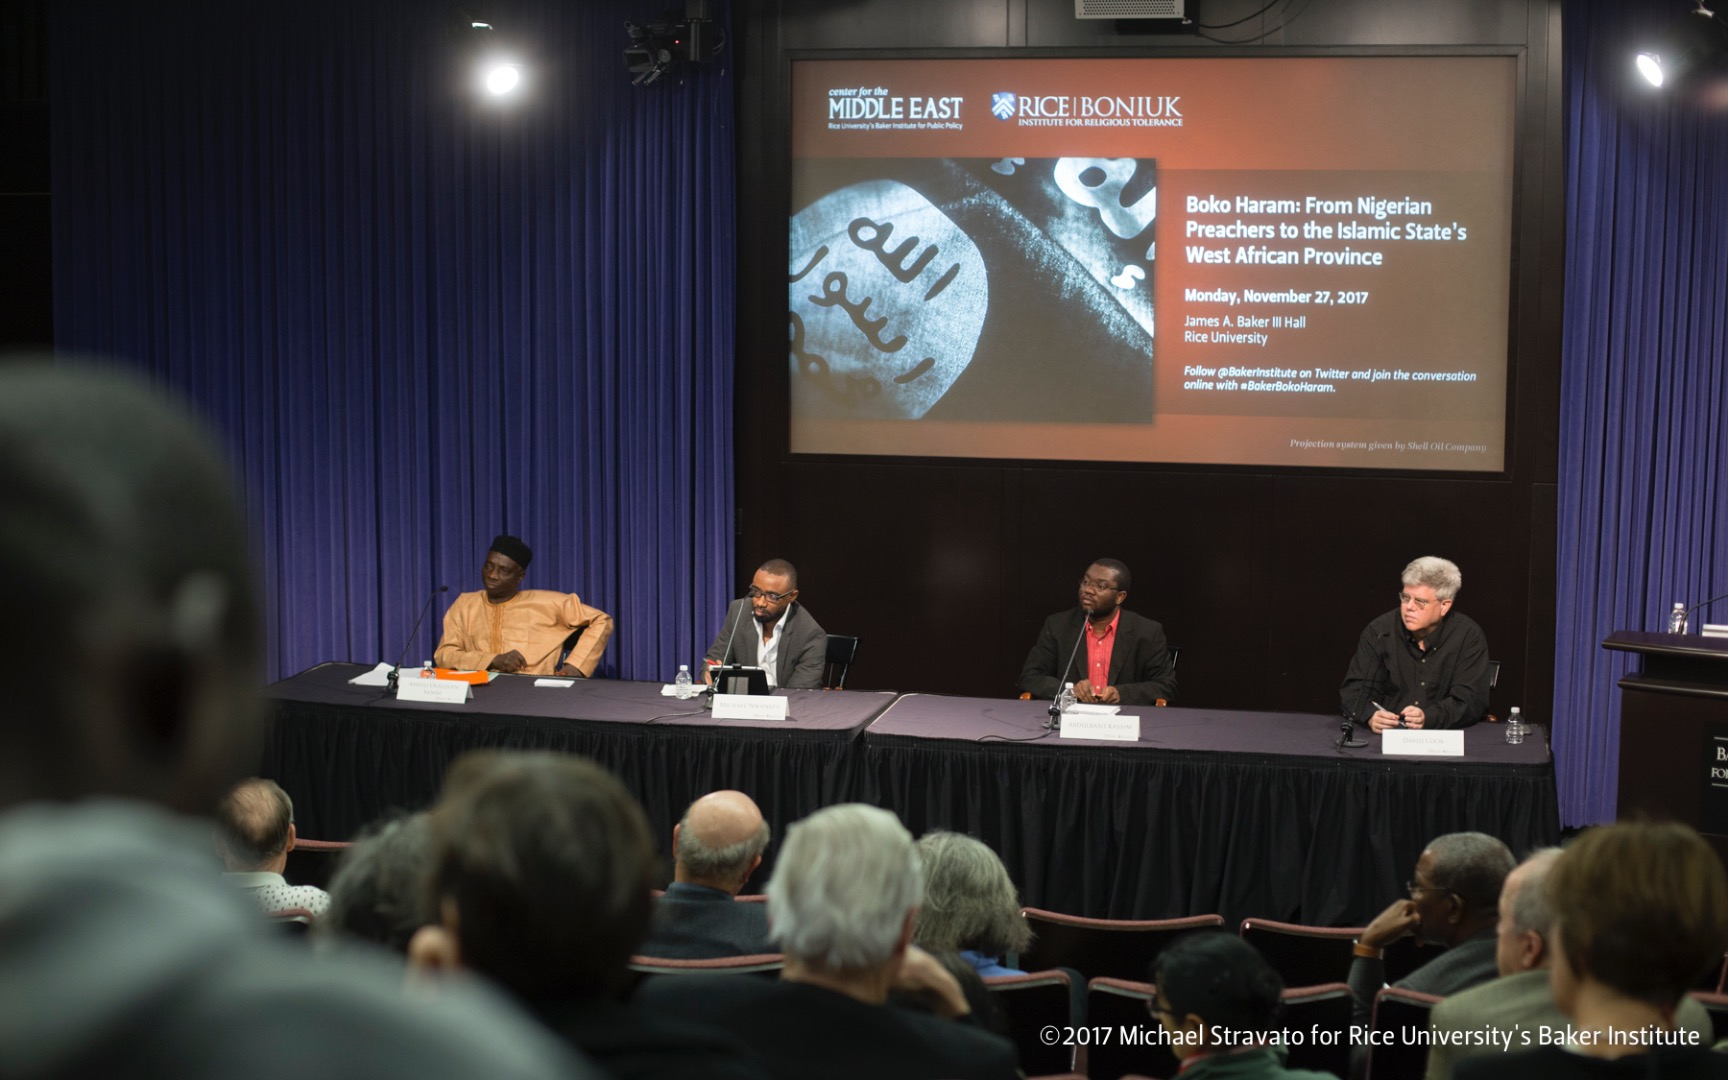 Panelists discuss Boko Haram